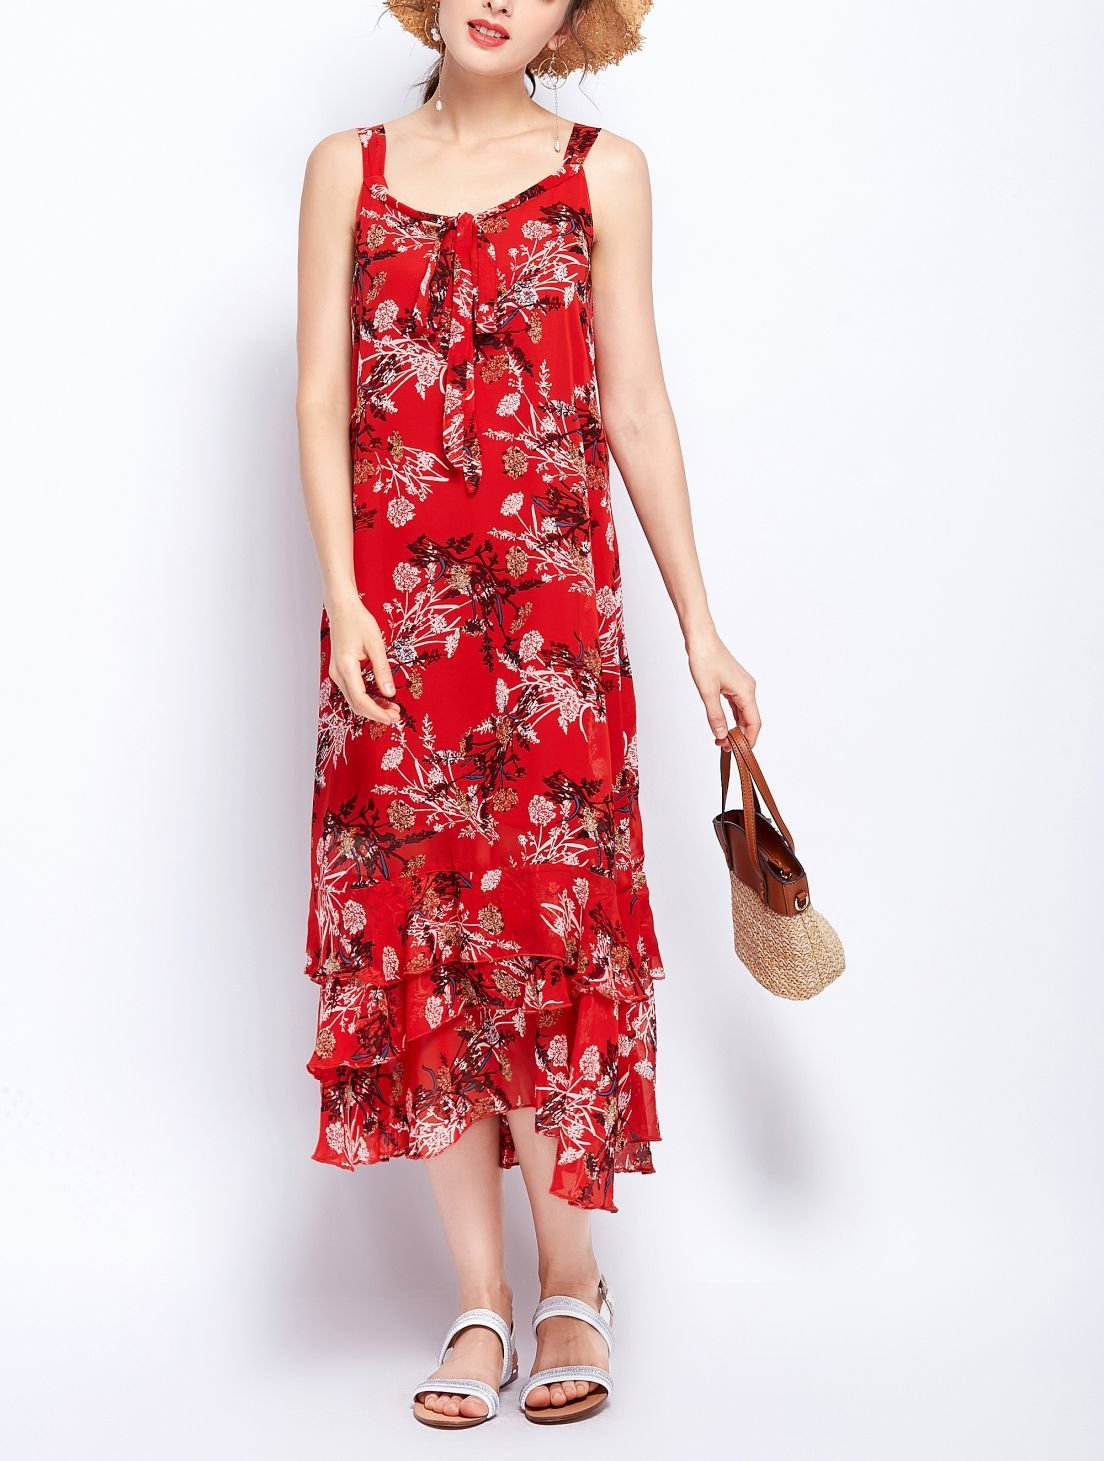 Casual Dress in Sleeveless Shift Silhouette